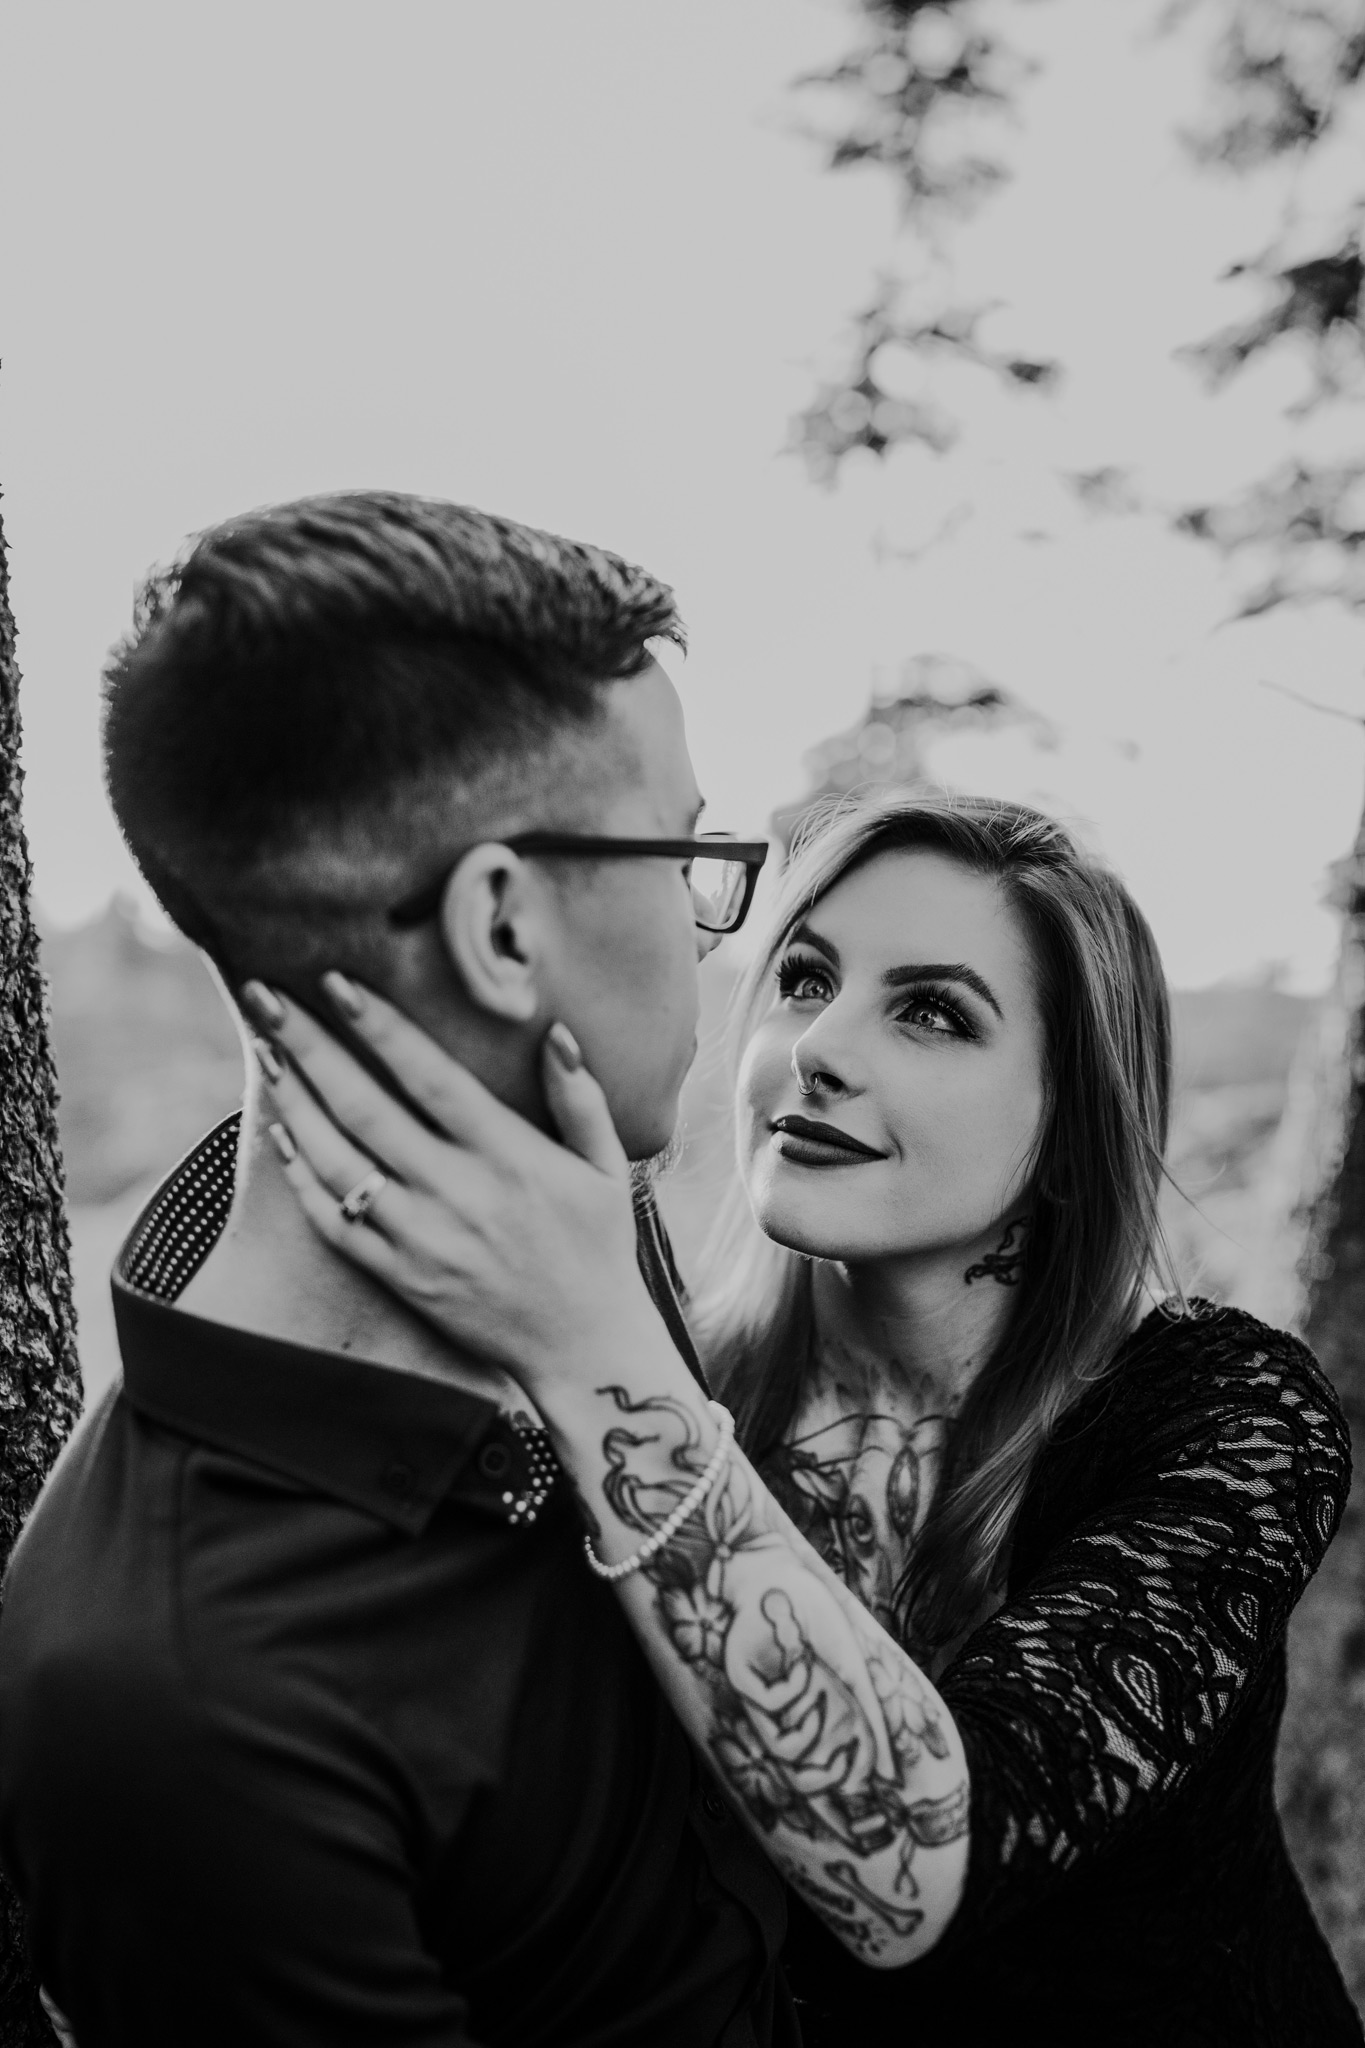 woman pulls fiancé's face to ears engagement ring photo